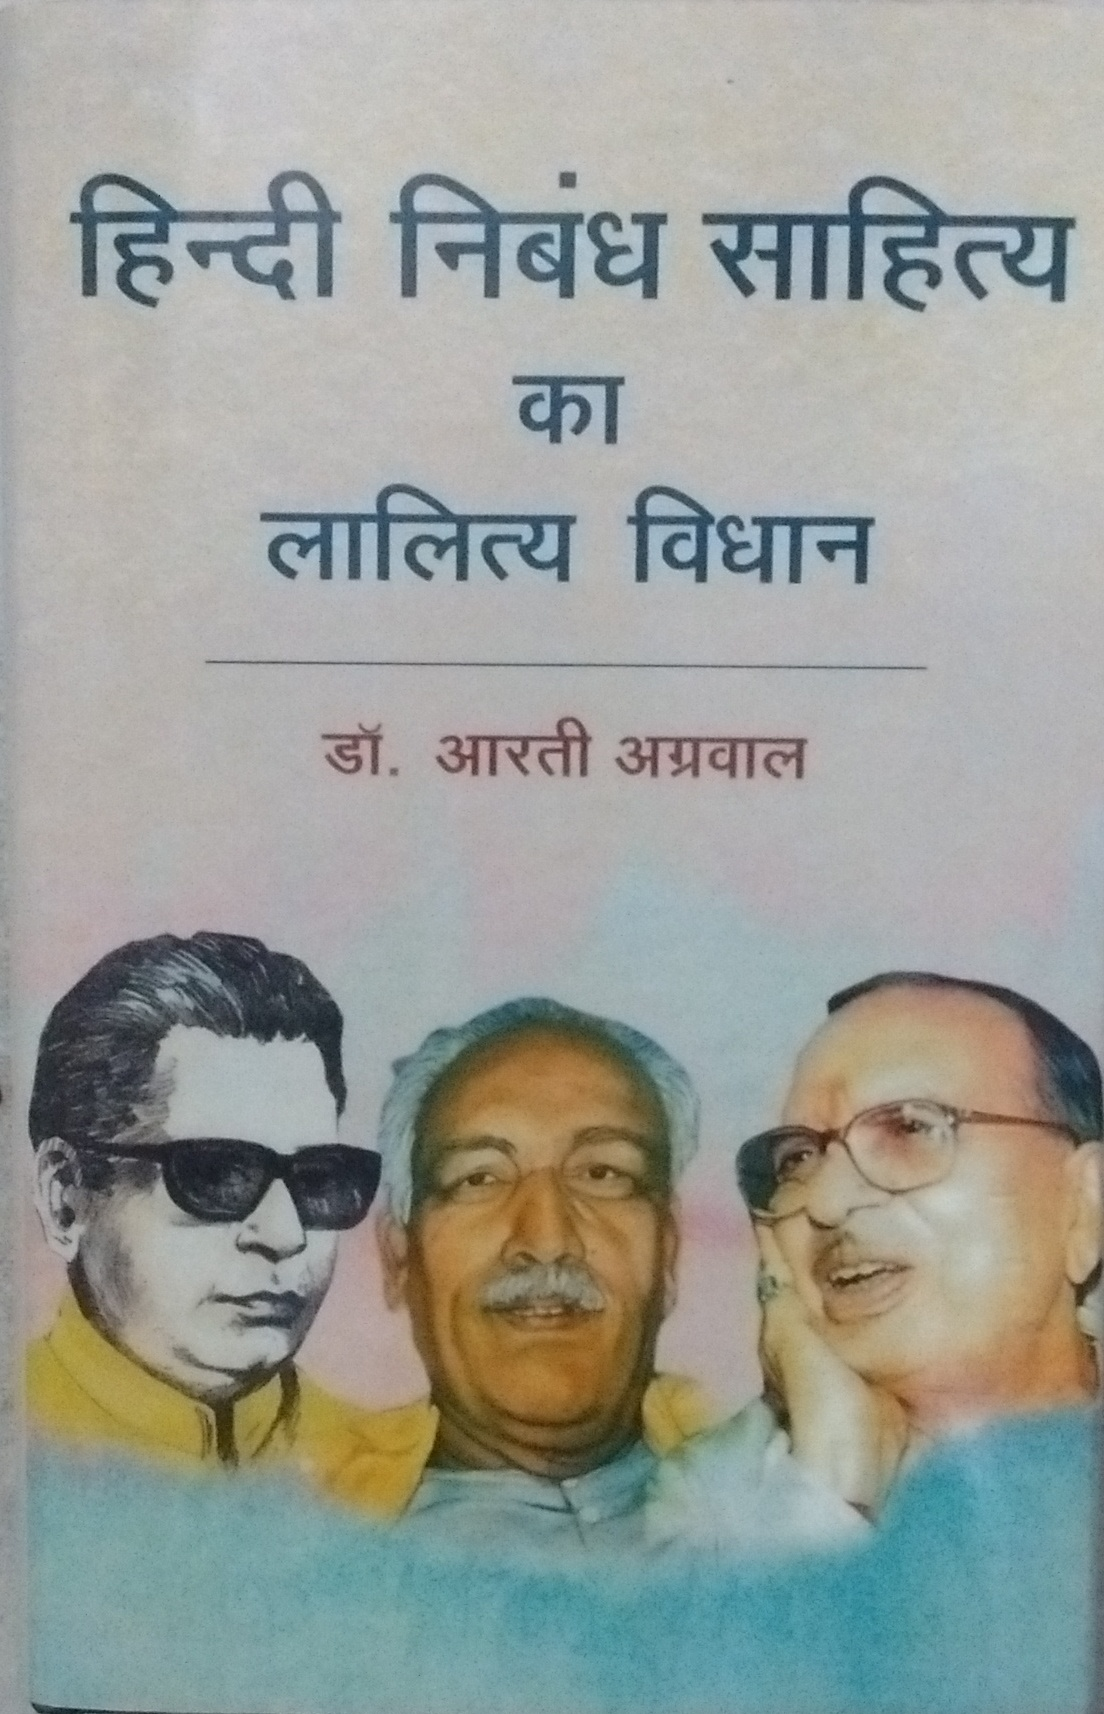 Hindi Literature Syllabus – Civil Services Mains Exam UPSC